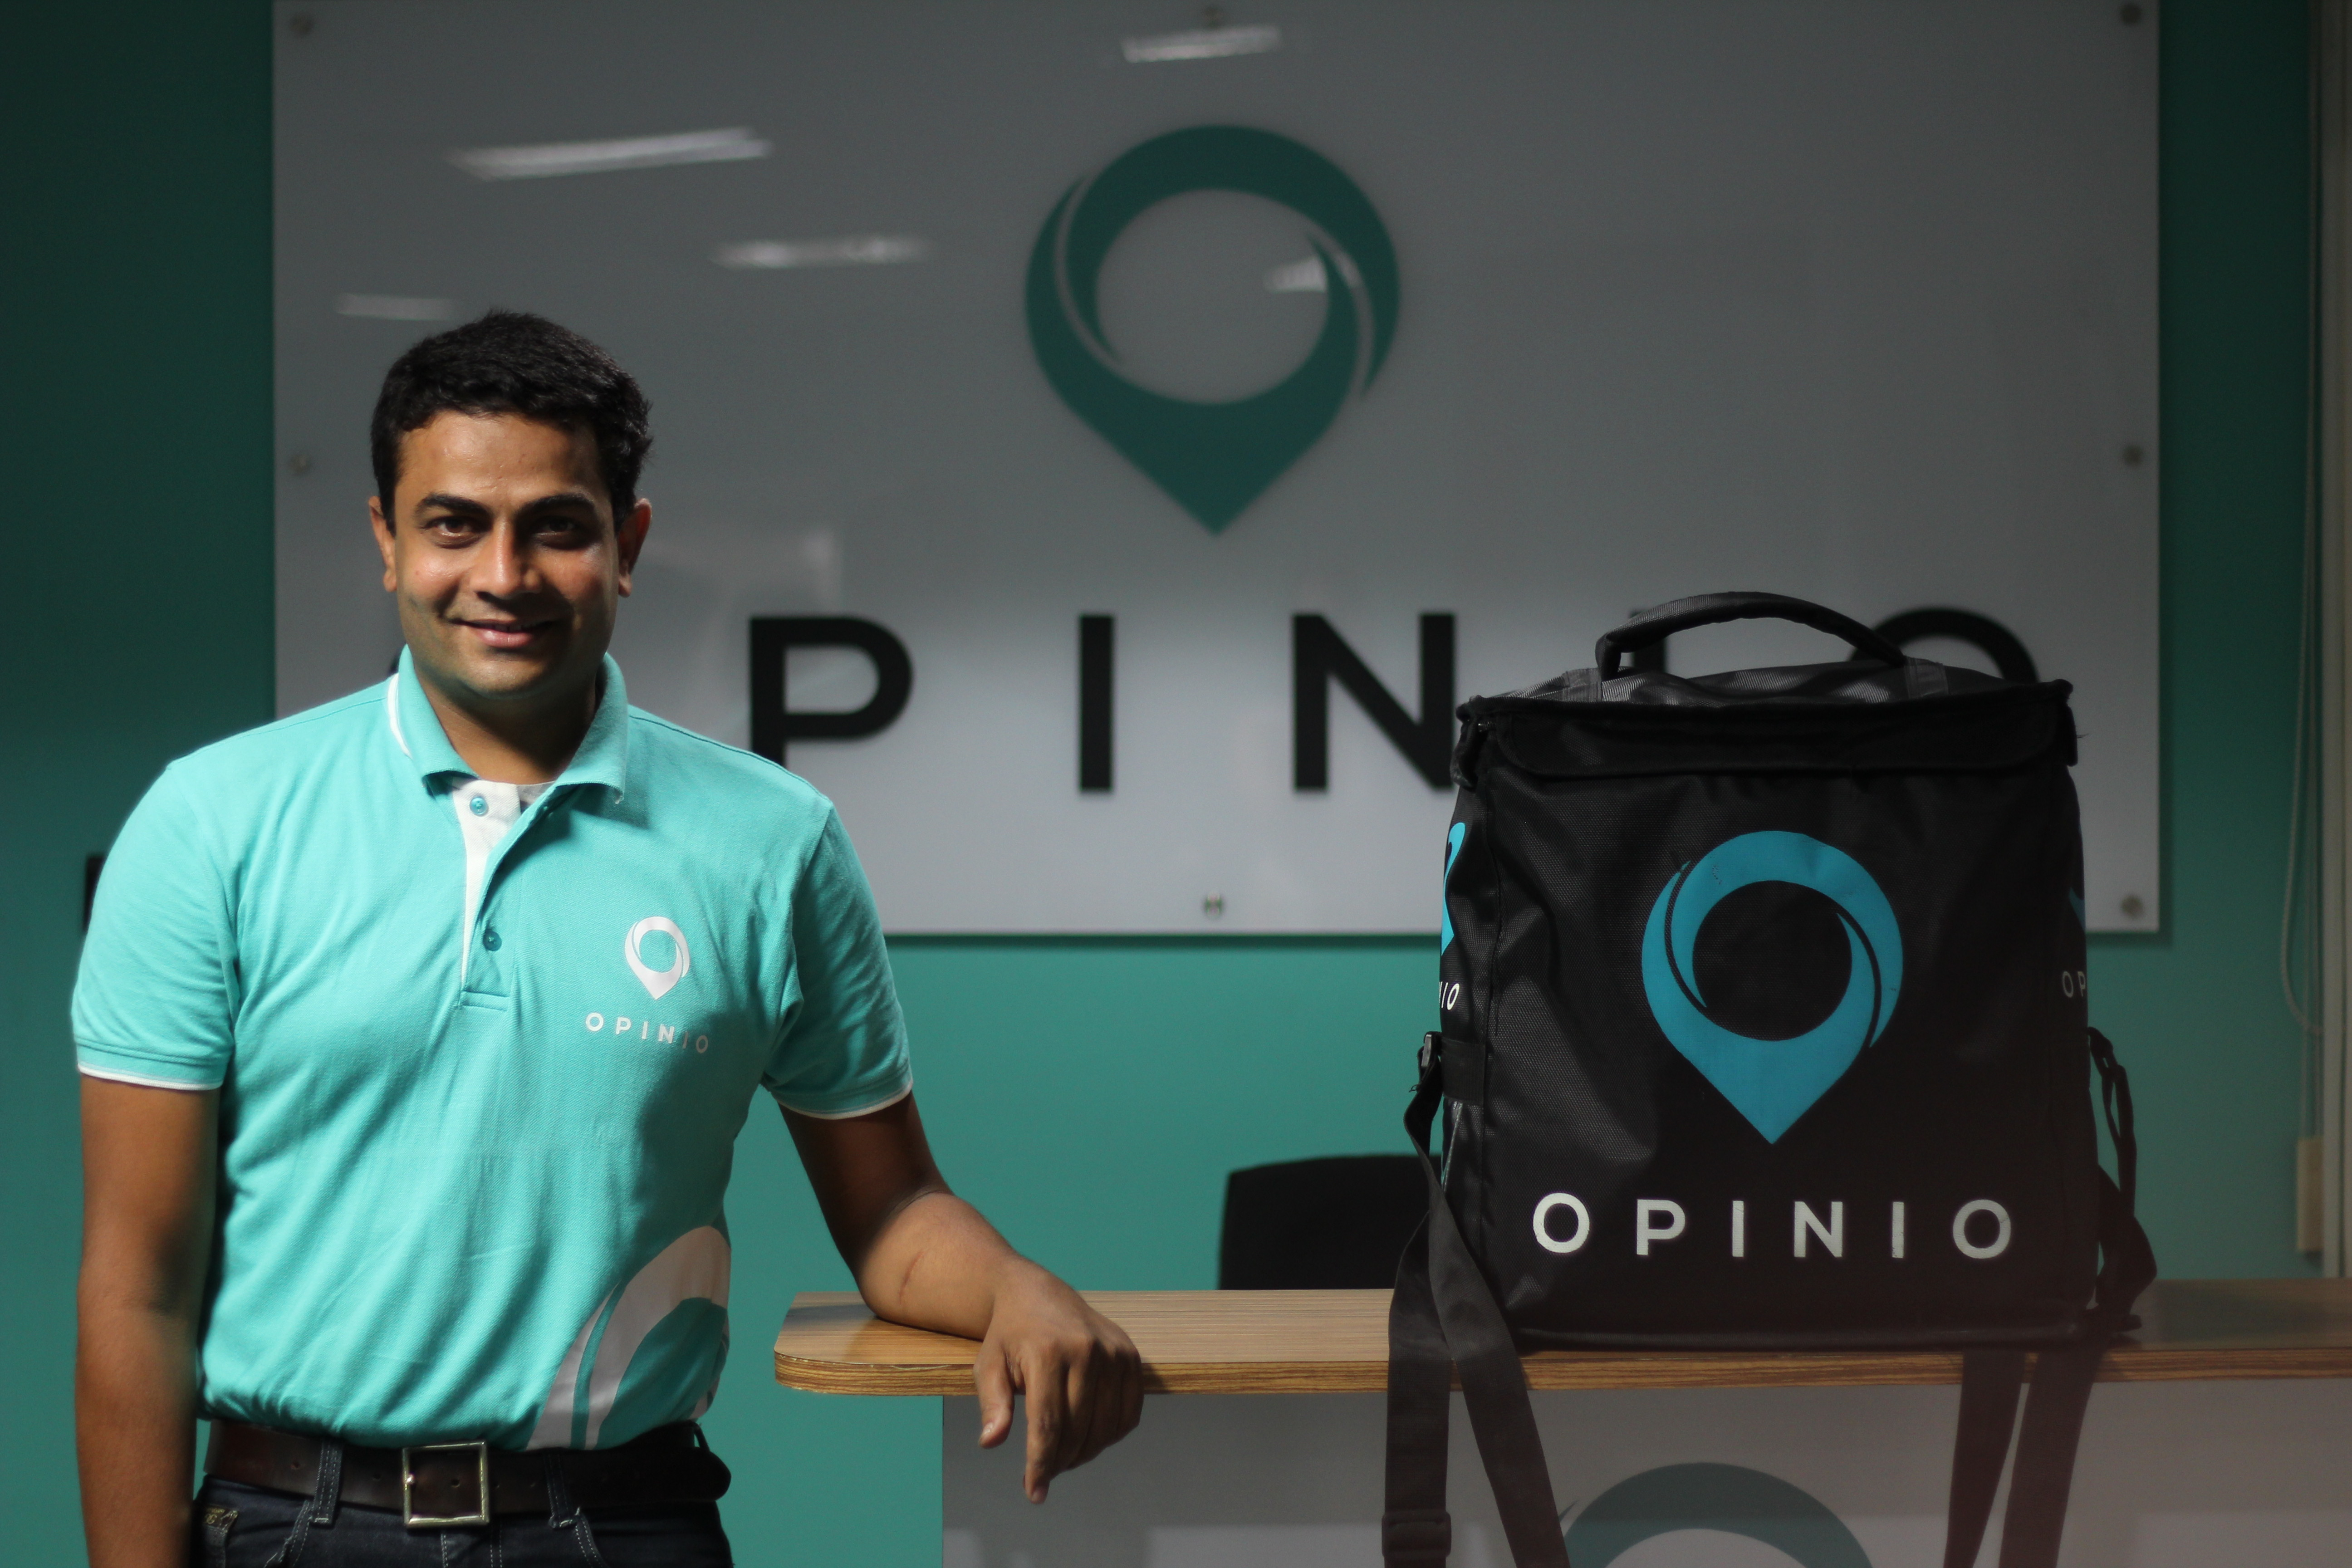 Hyperlocal Logistics Startup Opinio Lands $7M Series A To